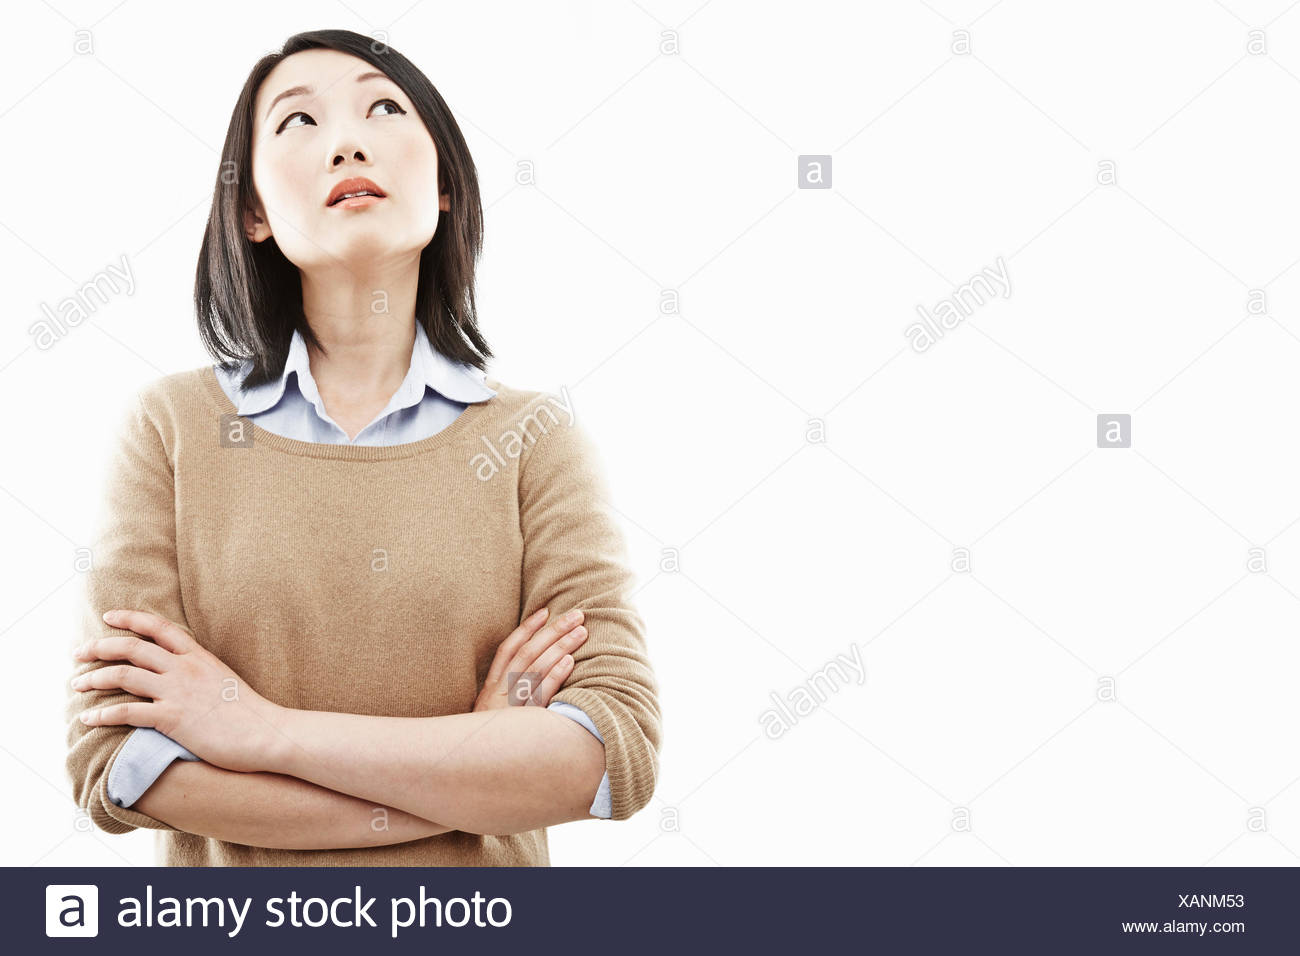 Close up studio portrait of young woman with arms folded - Stock Image